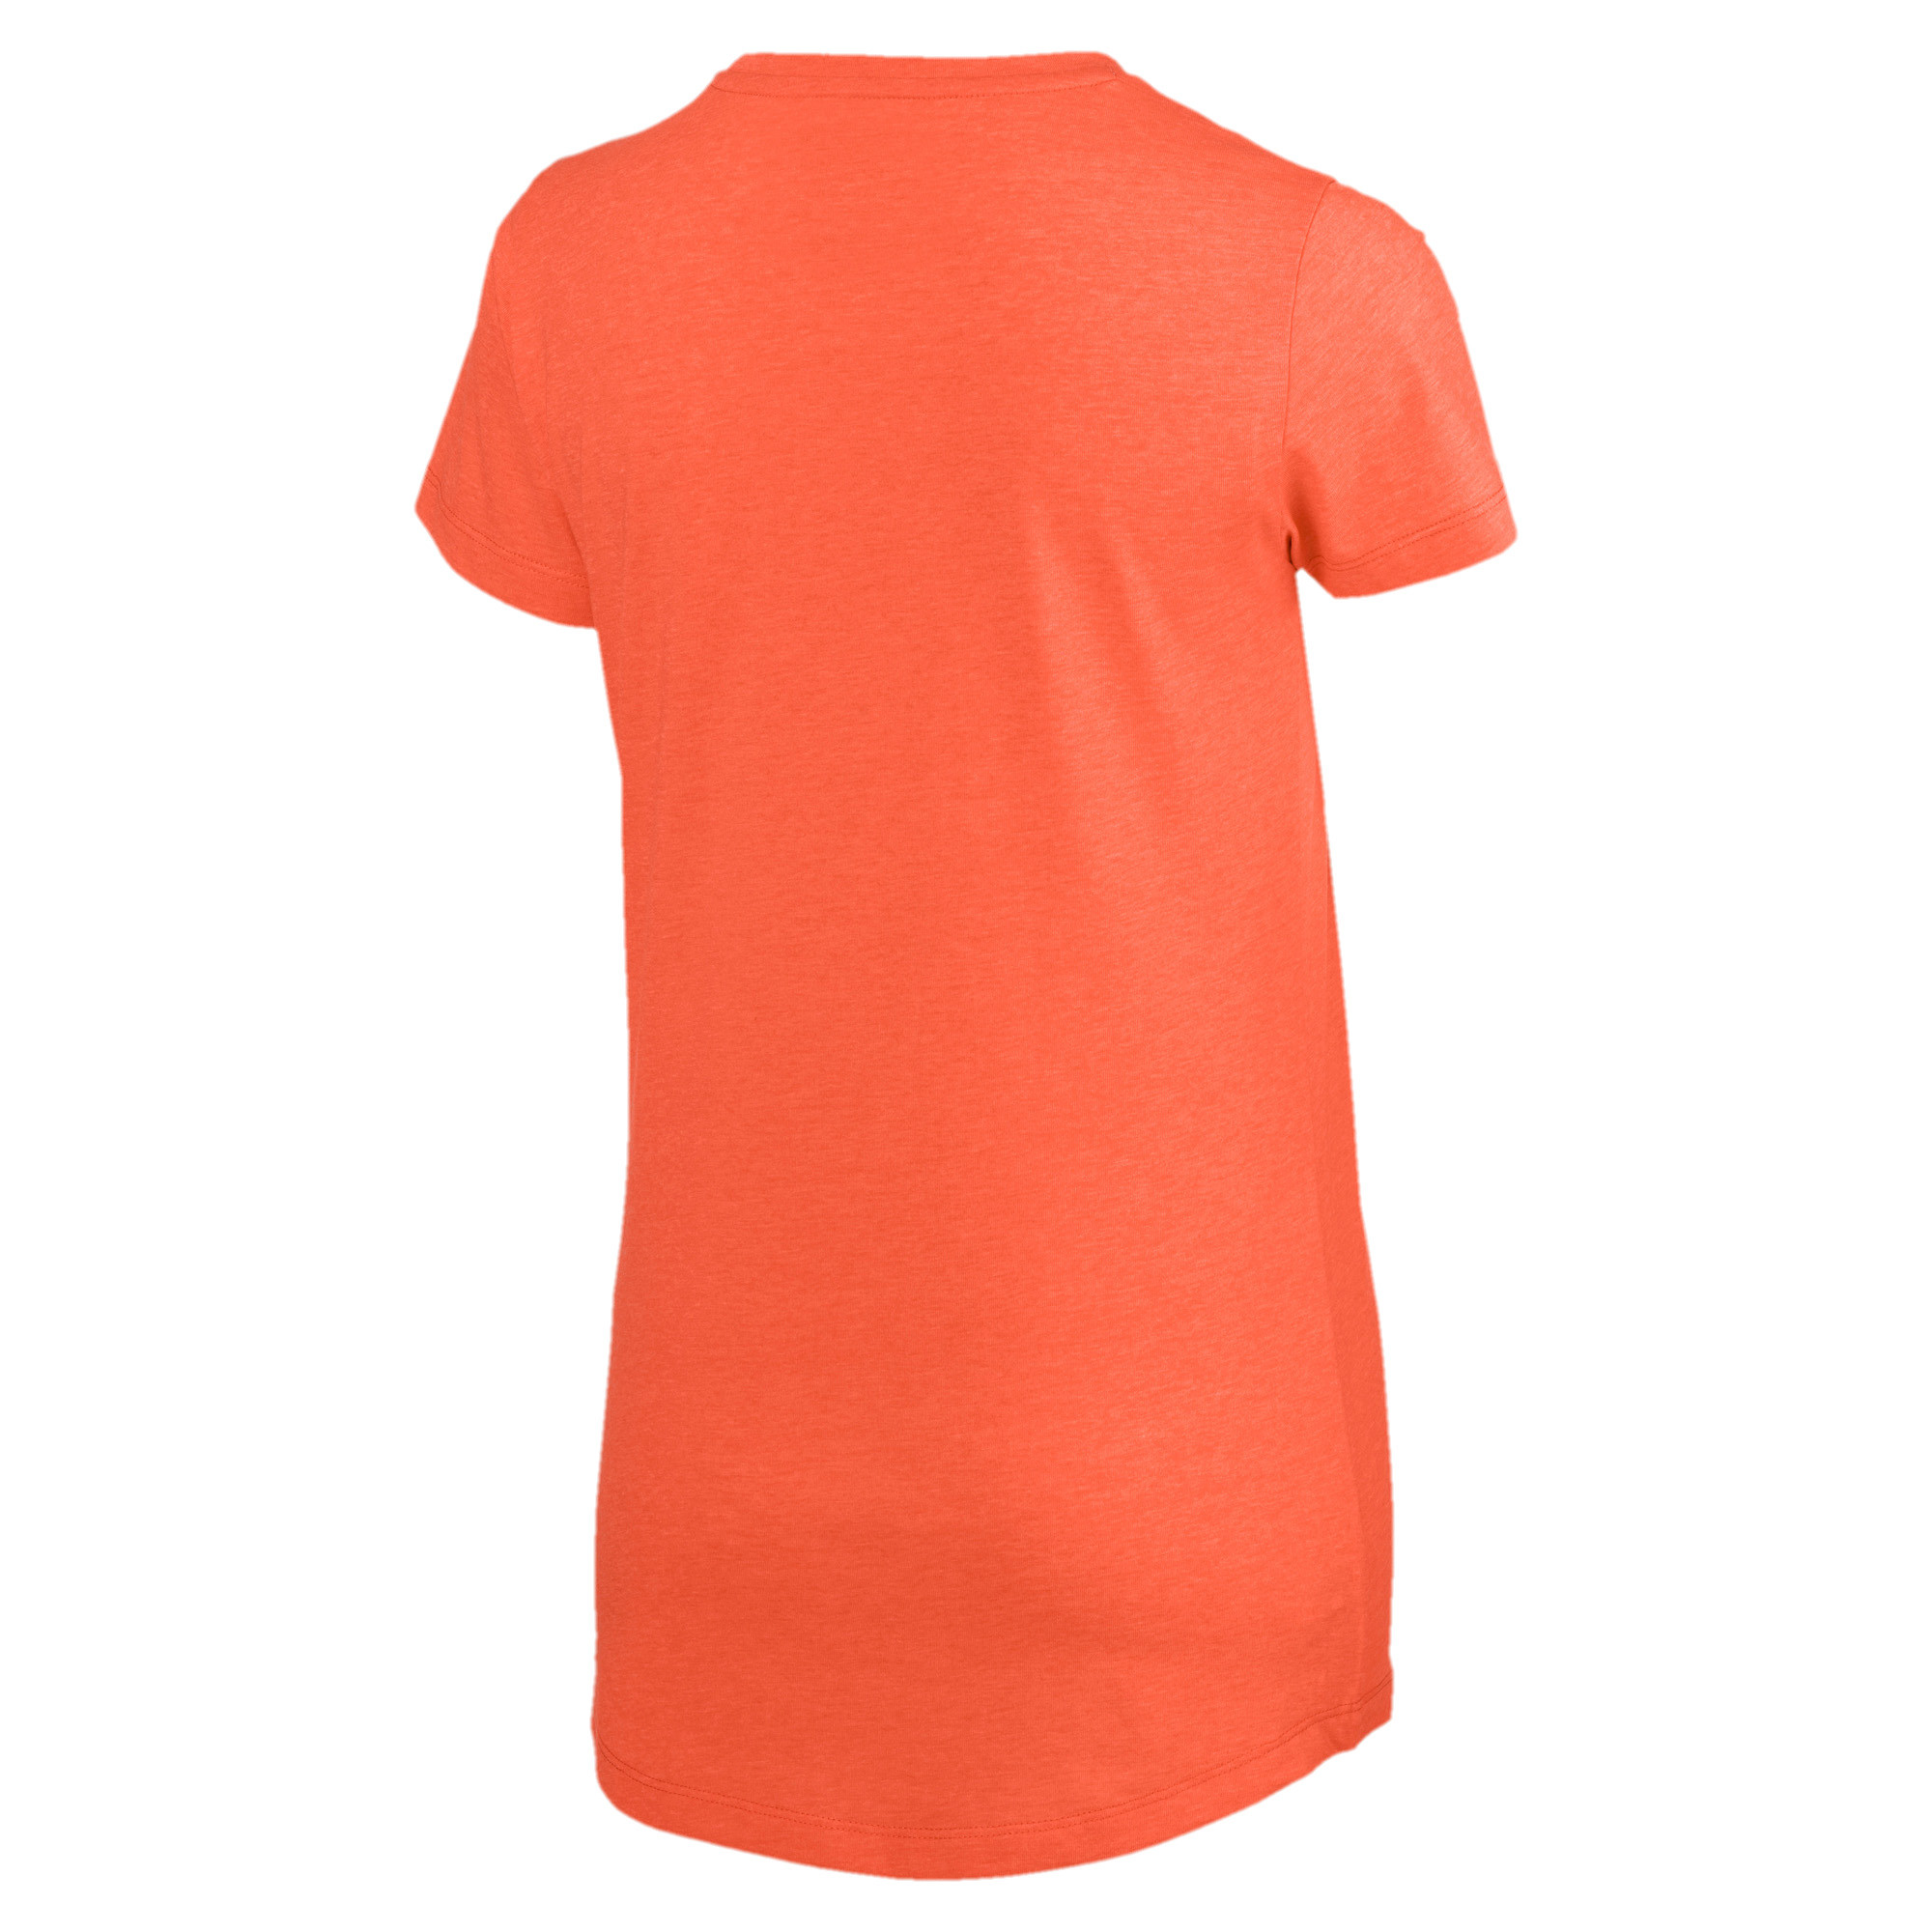 PUMA-Essentials-Women-039-s-Heather-Tee-Women-Tee-Basics thumbnail 55